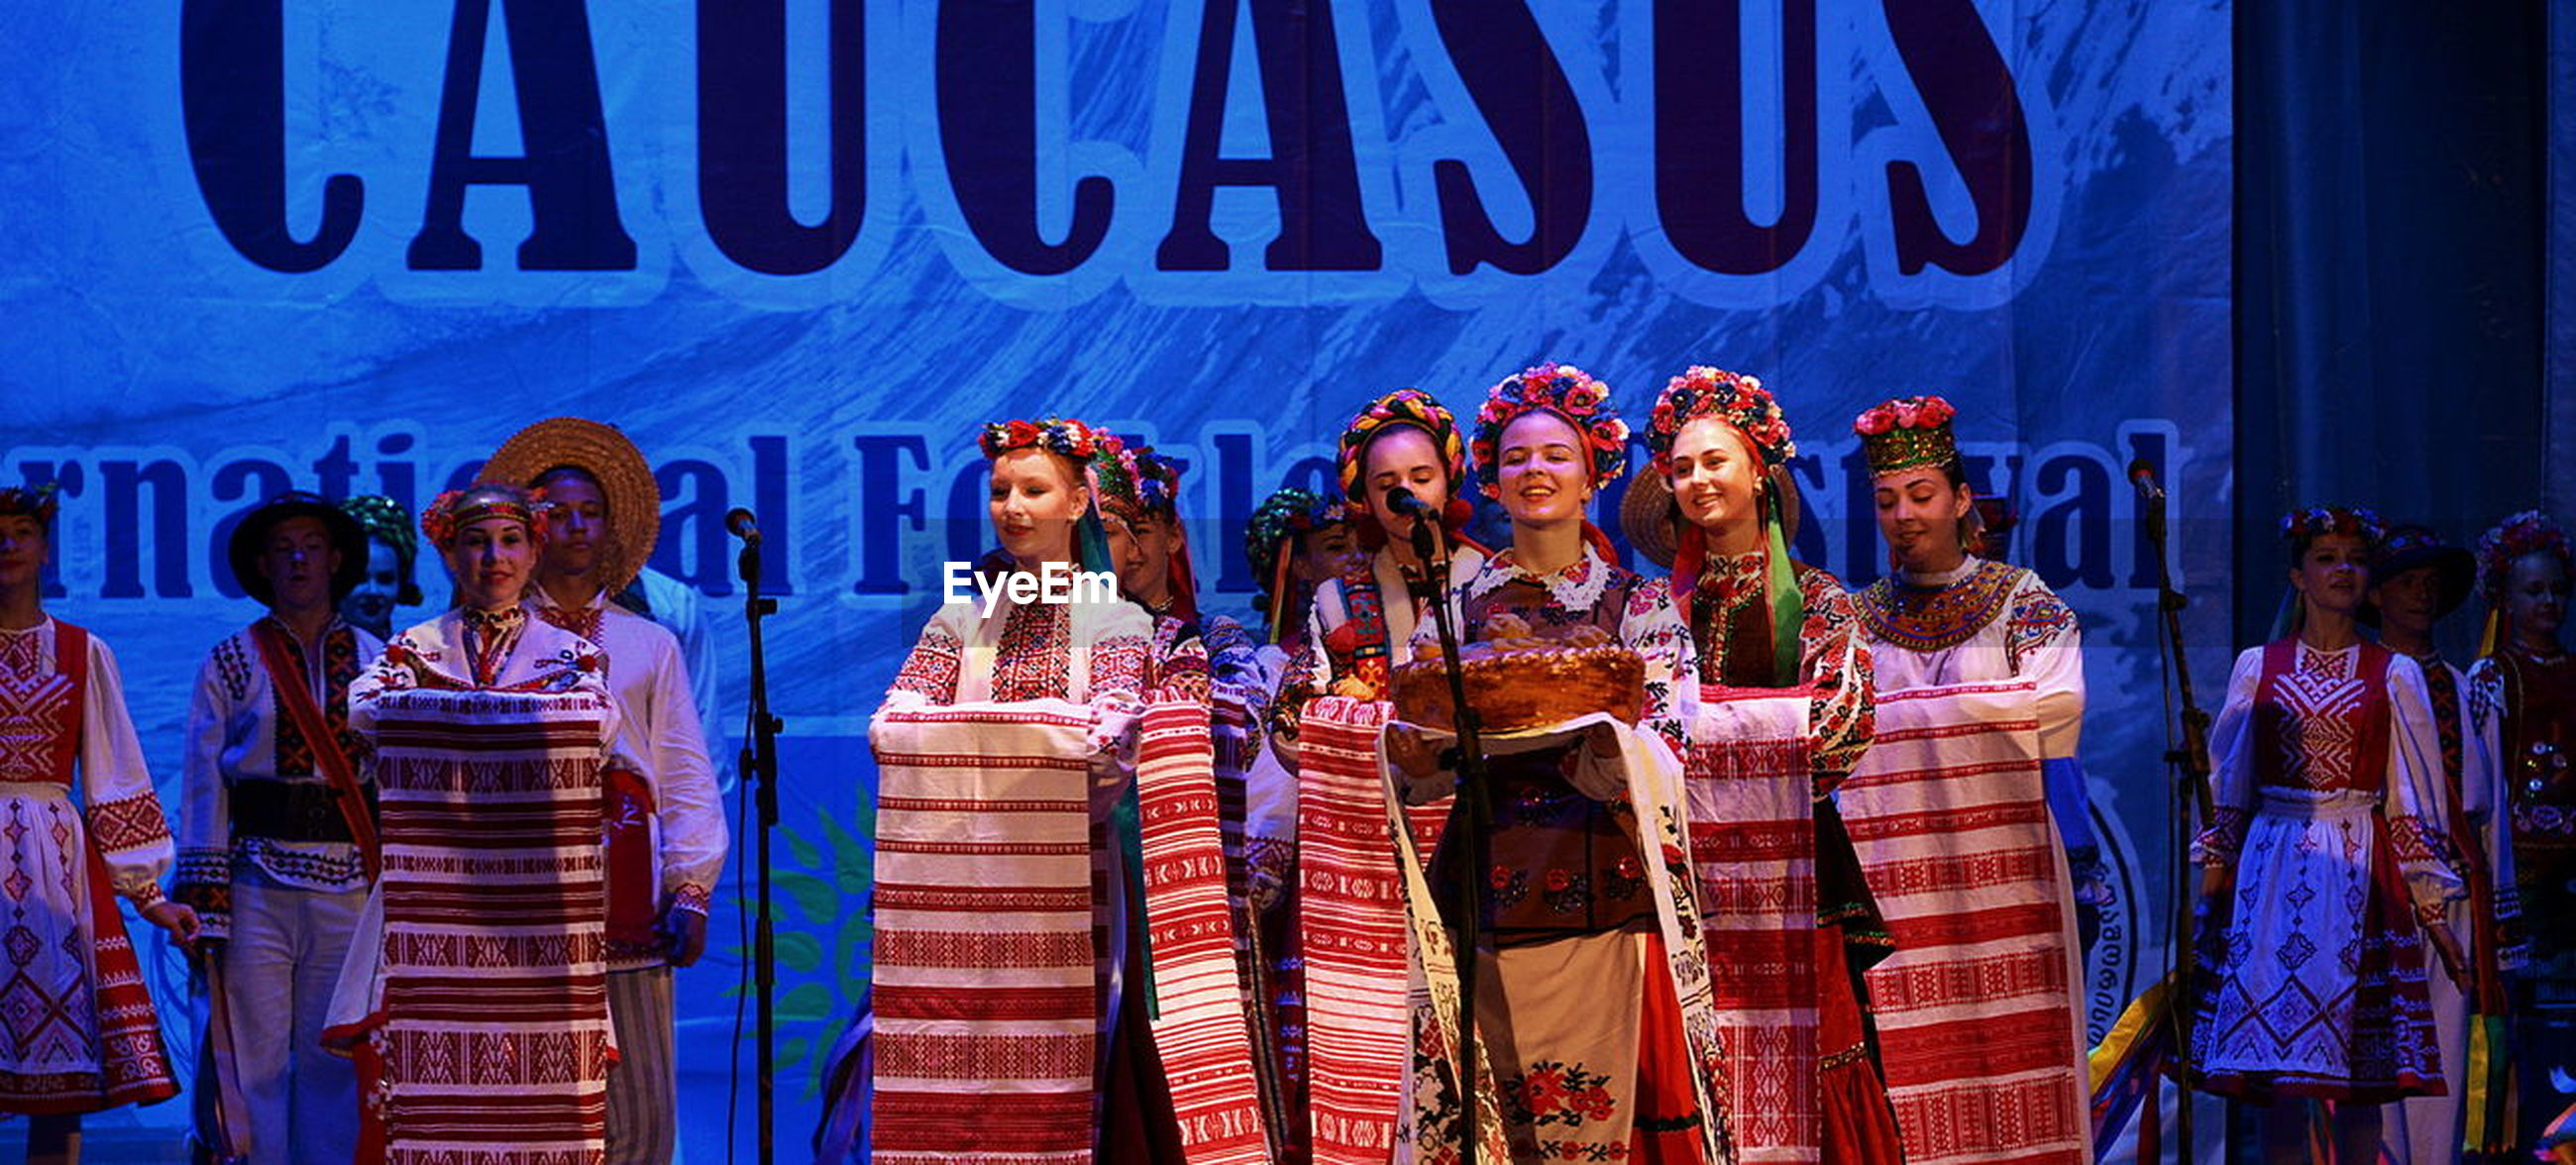 Women in traditional clothing standing on stage